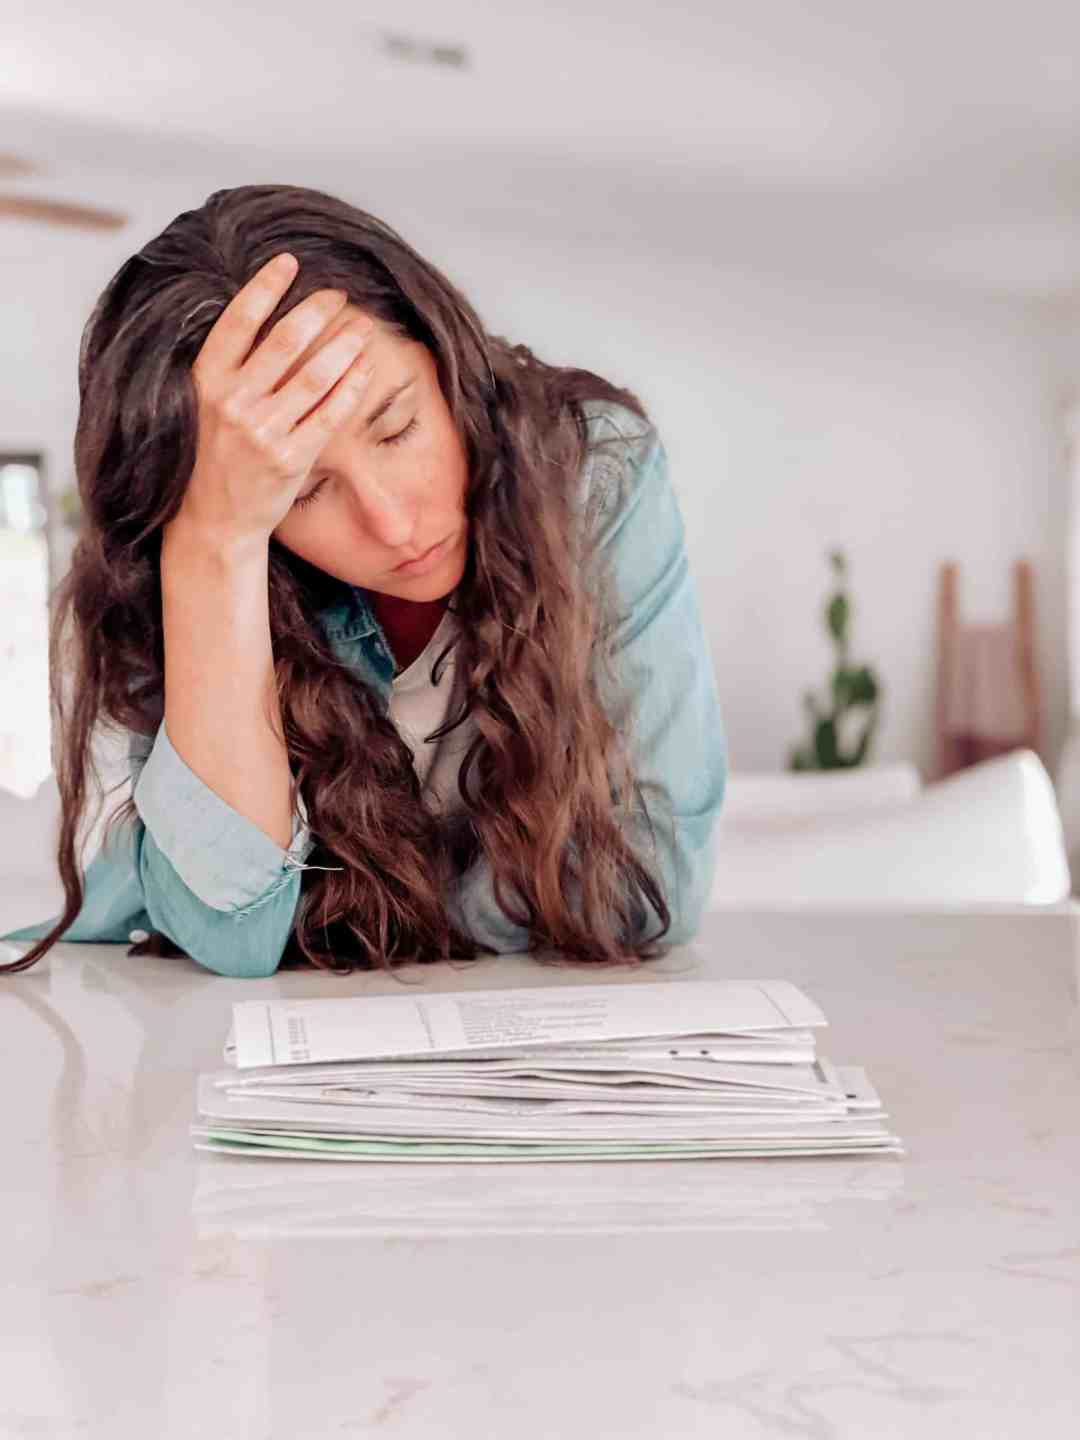 11 Ways To Cope With Financial Stress And Anxiety, how to deal with financial stress in marriage, ways to reduce and overcome financial stressors, how to handle and manage money during tough times causing anxiety or problems in your relationship, personal financial tips for relief around money stress, #financialstress #financestress, #moneystress, #personalfinancetips